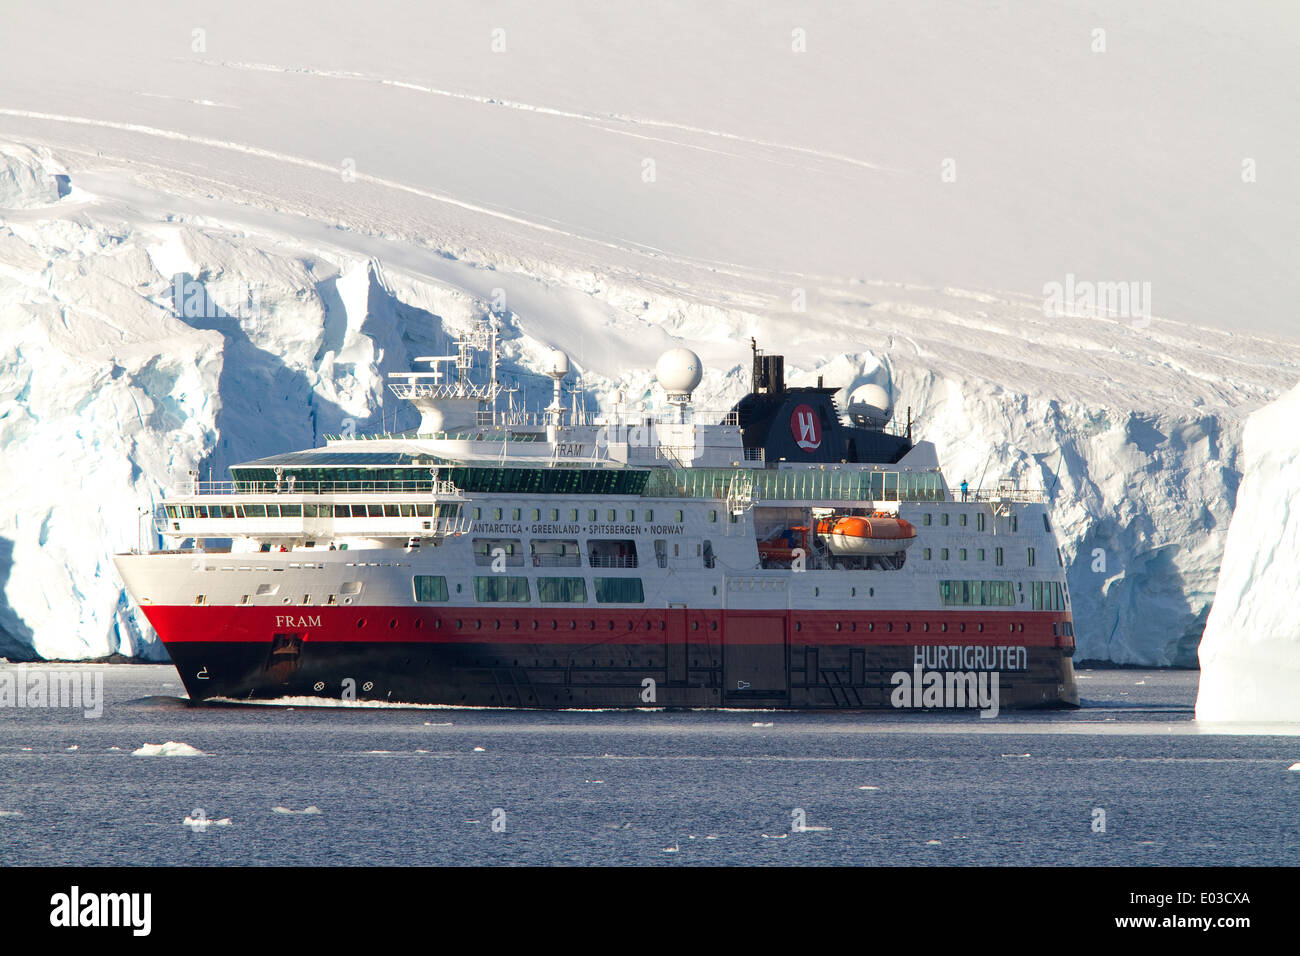 Cruise ship the Fram during a cruise in Antarctica with Antarctic glacier and iceberg. - Stock Image